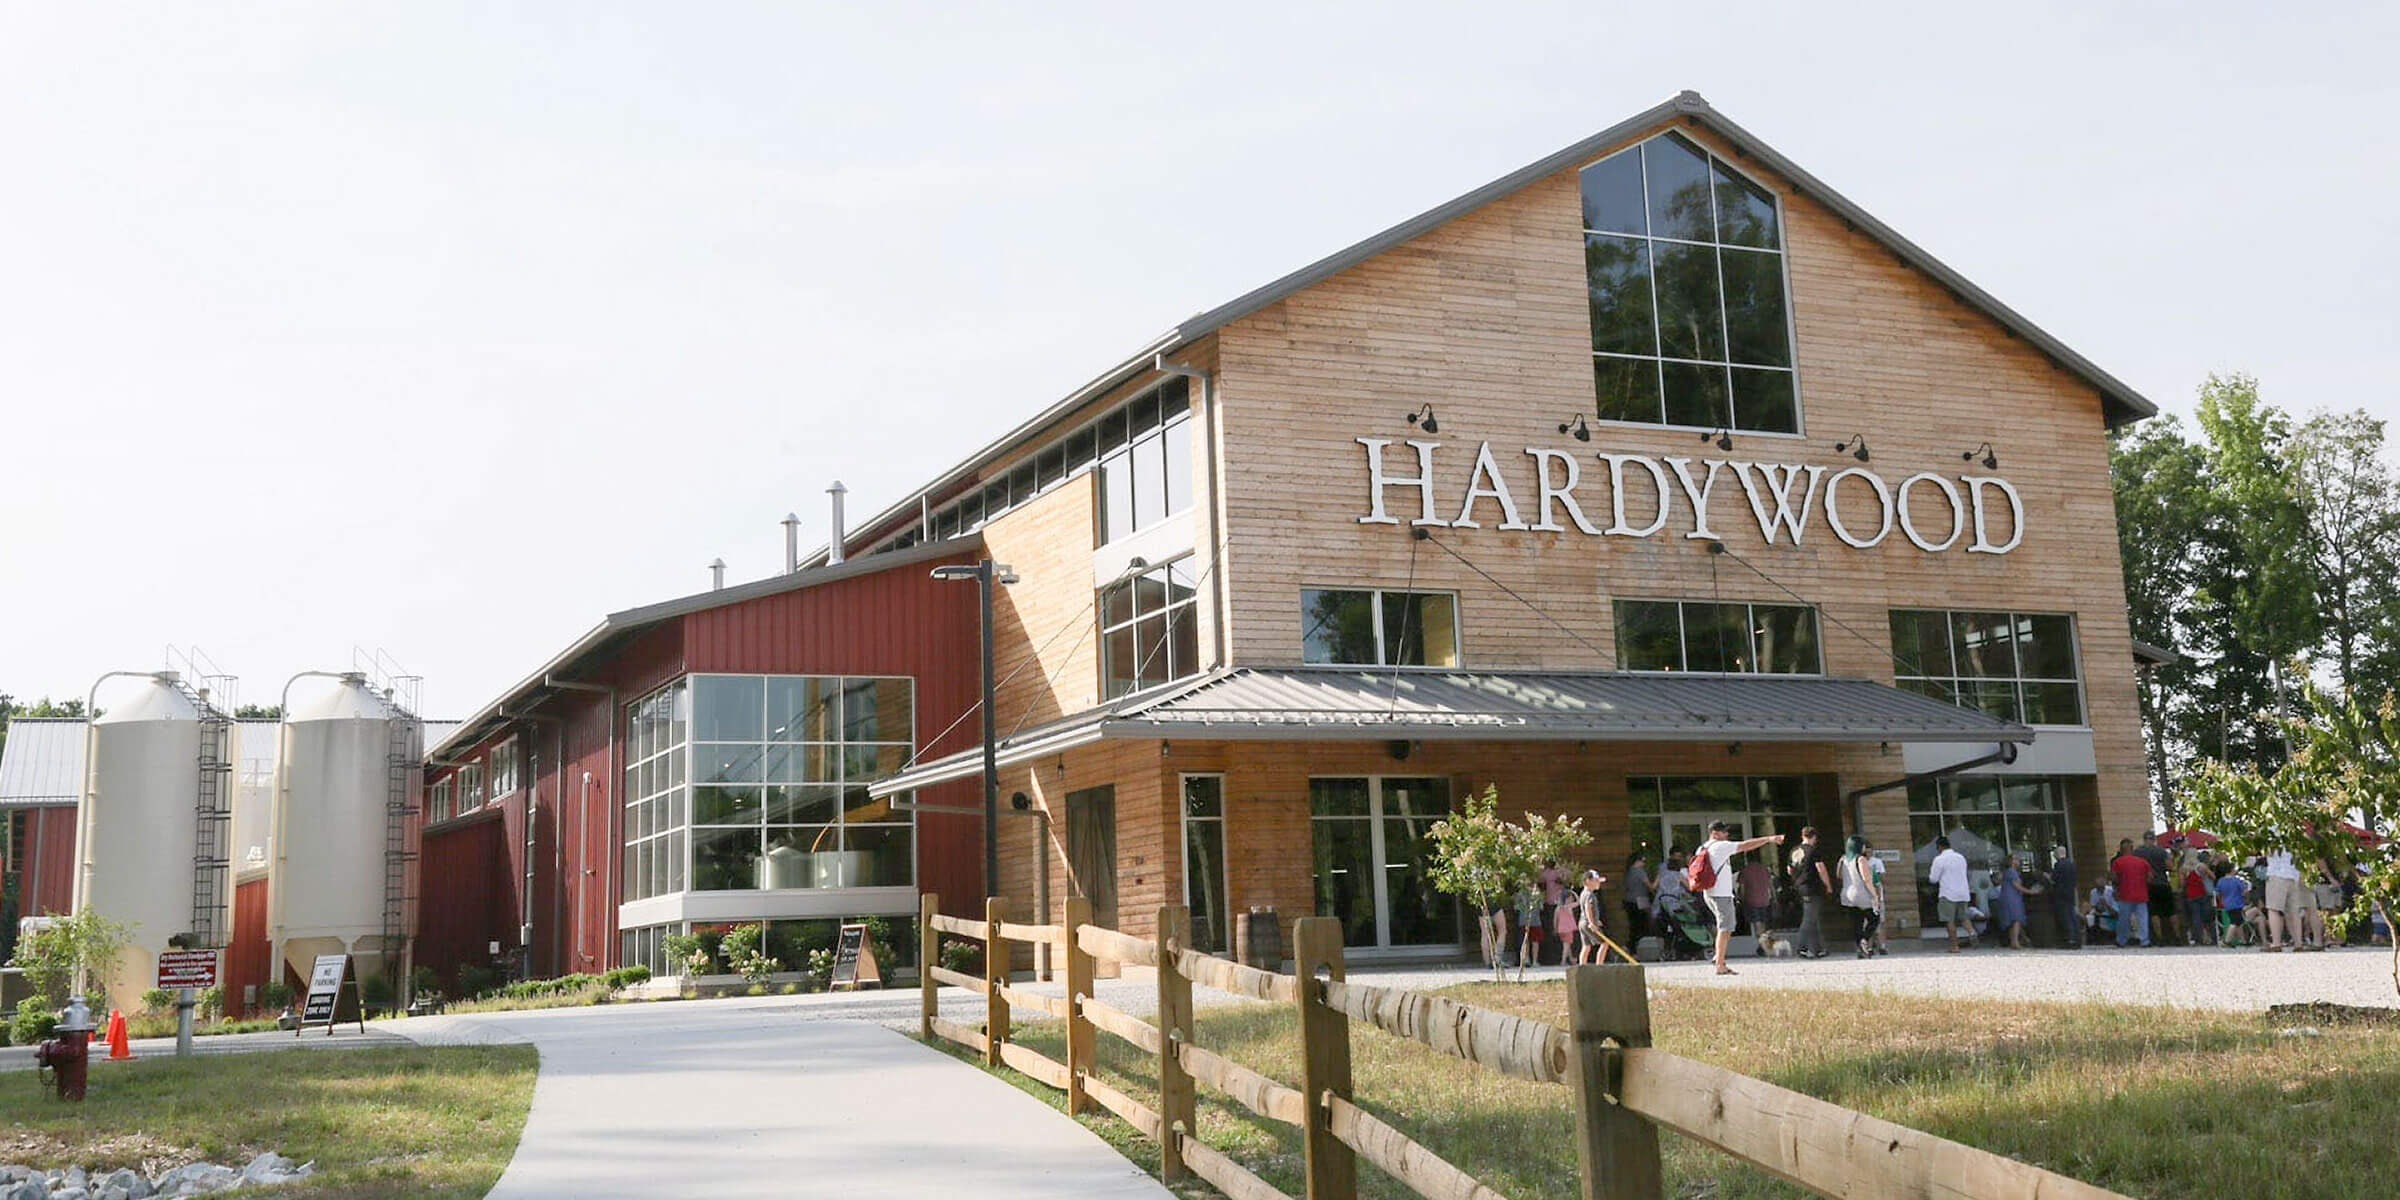 Outside the Hardywood Park Craft Brewery production facility in Richmond, Virginia